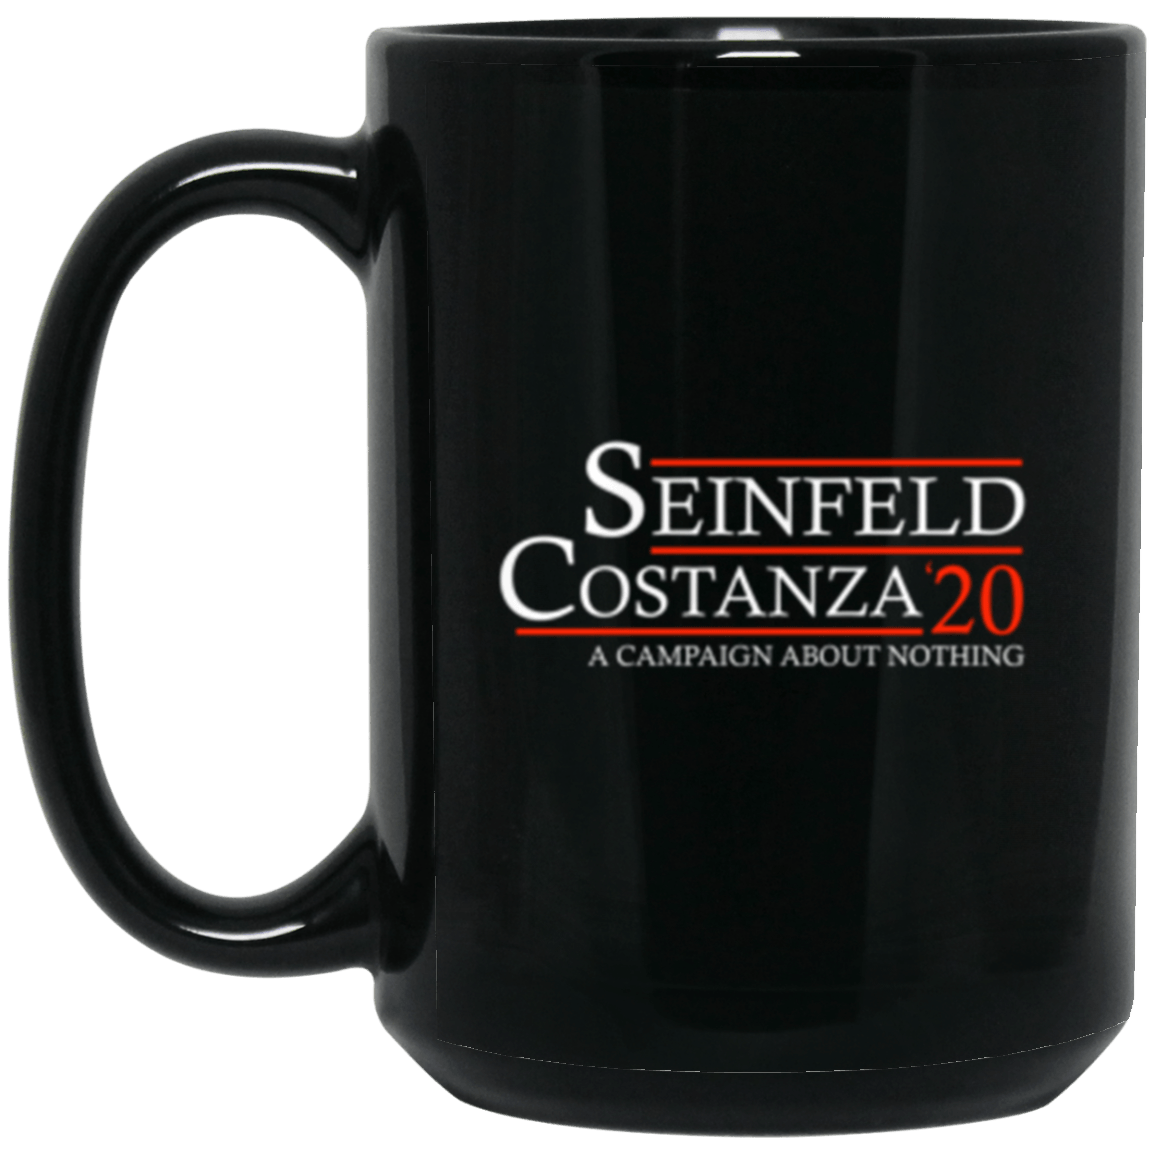 Seinfeld 20 Black Mug 15oz (2-sided)